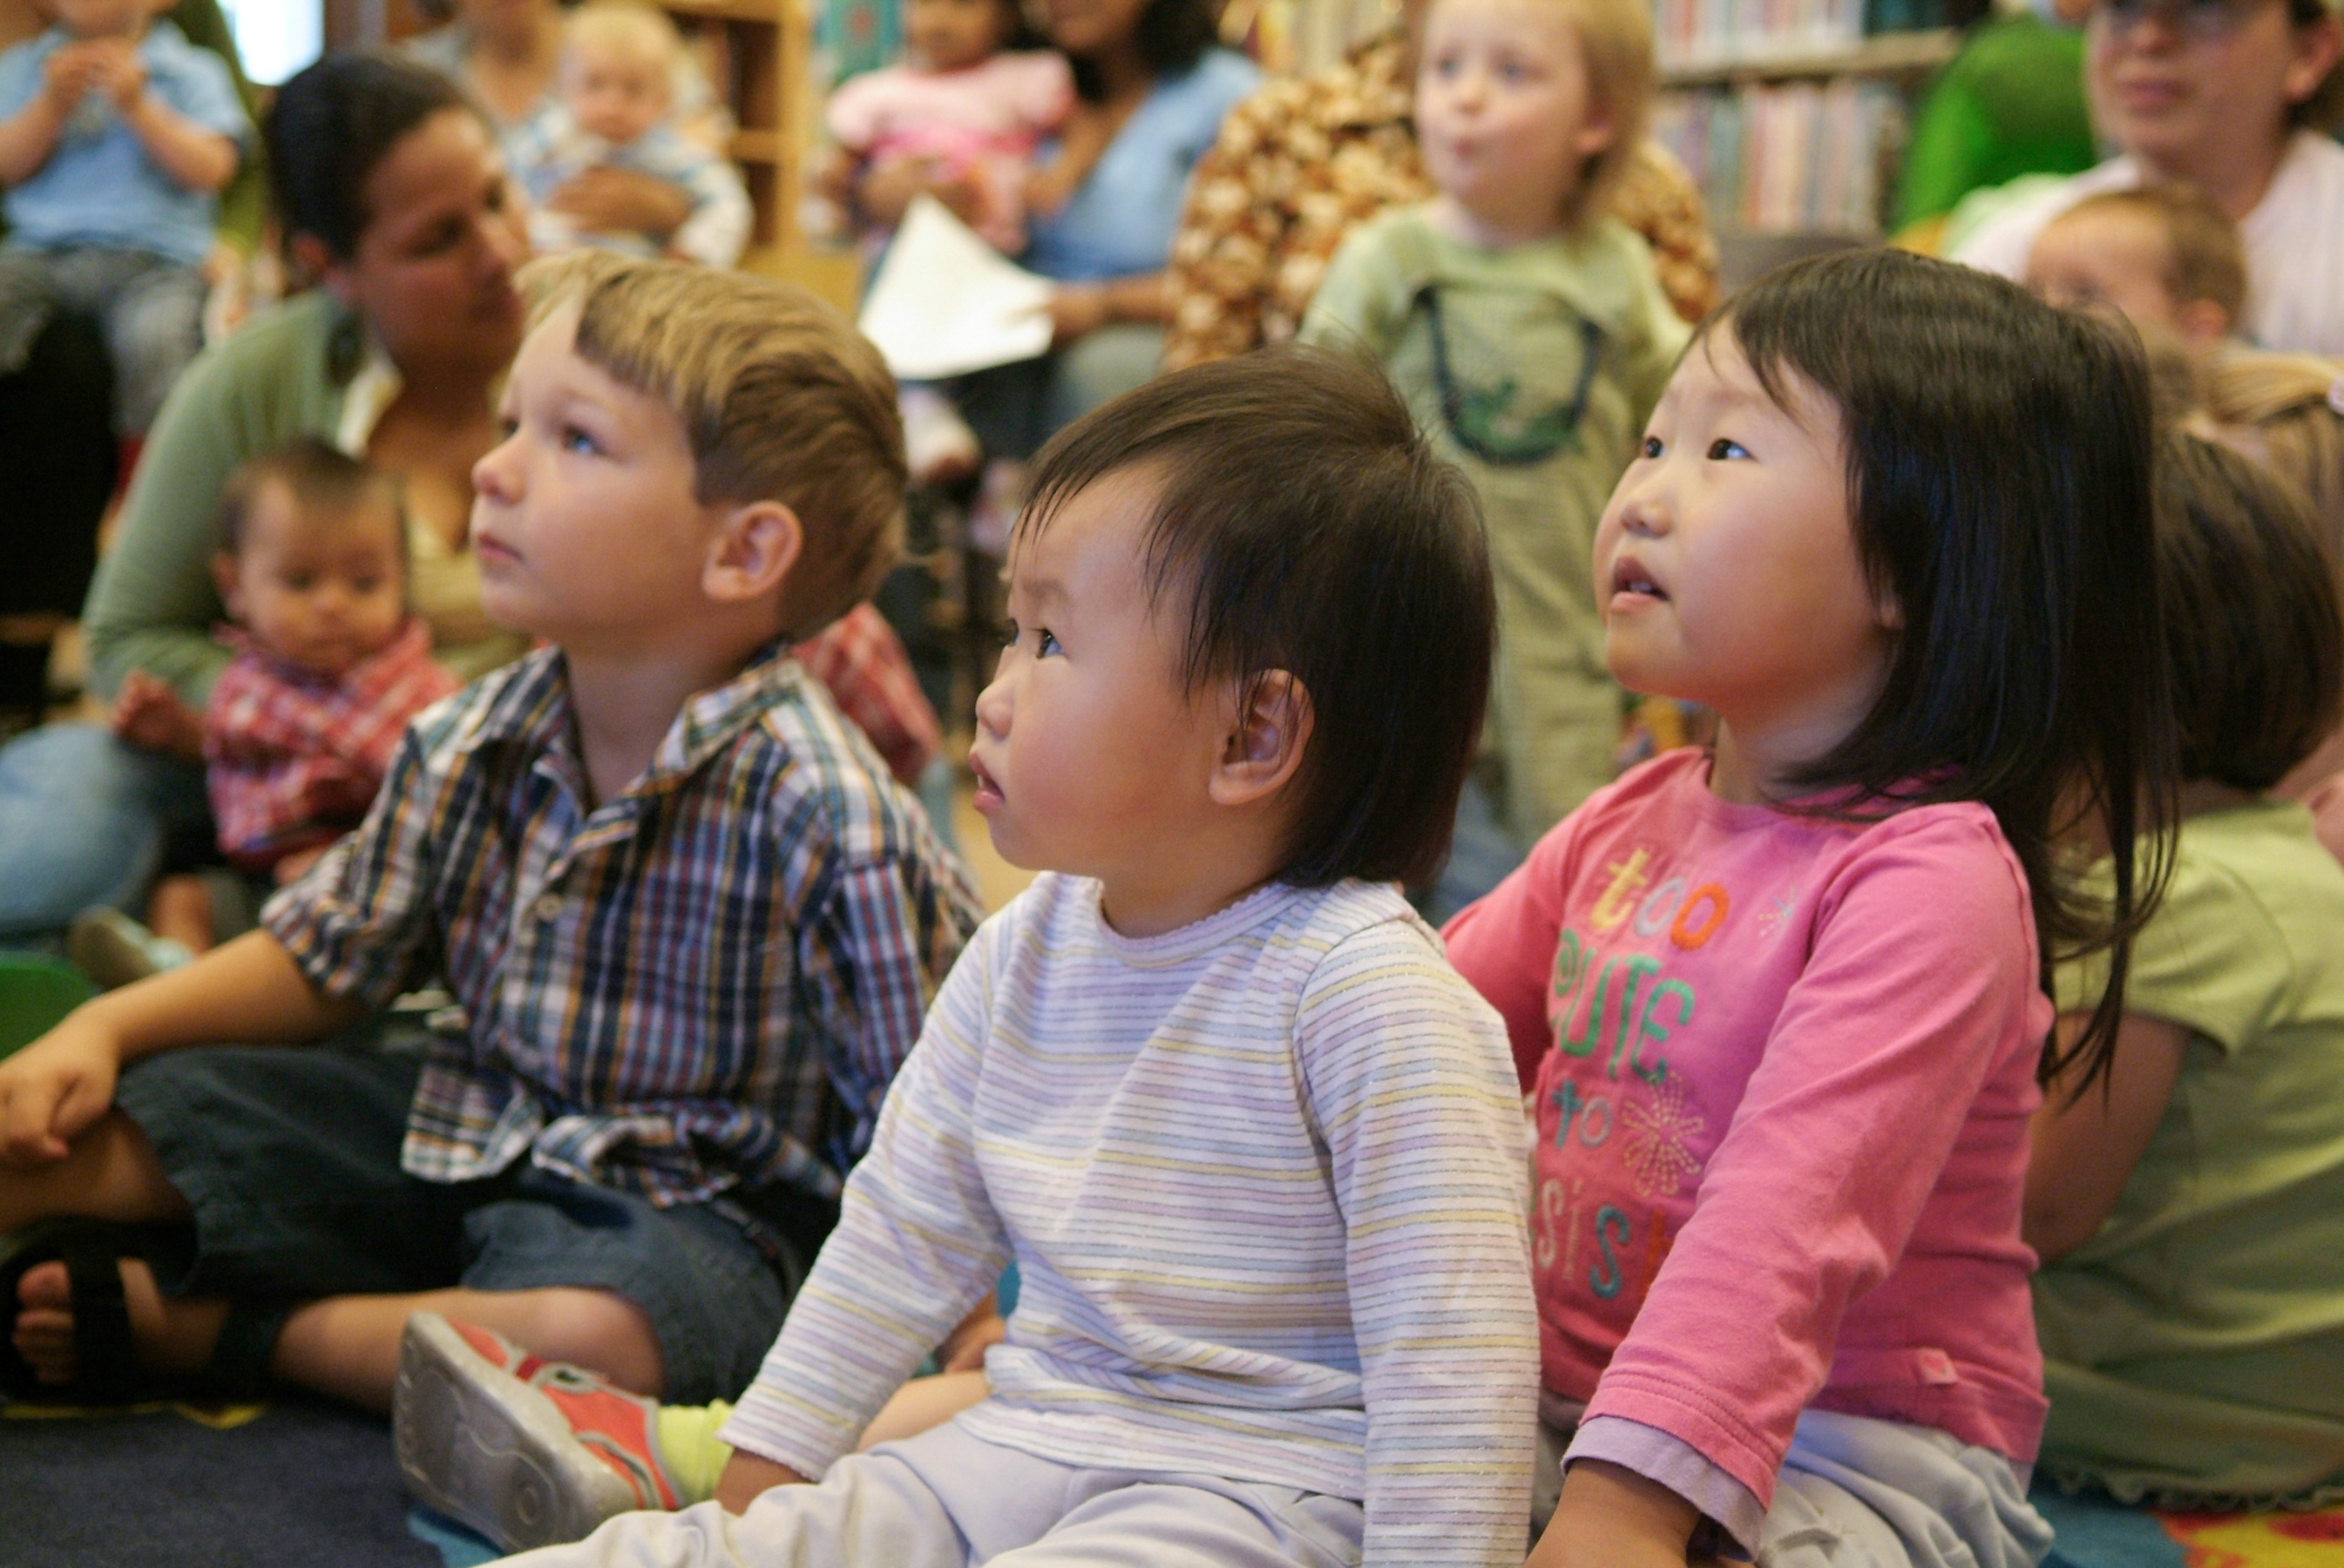 Young children watching storytime presenter